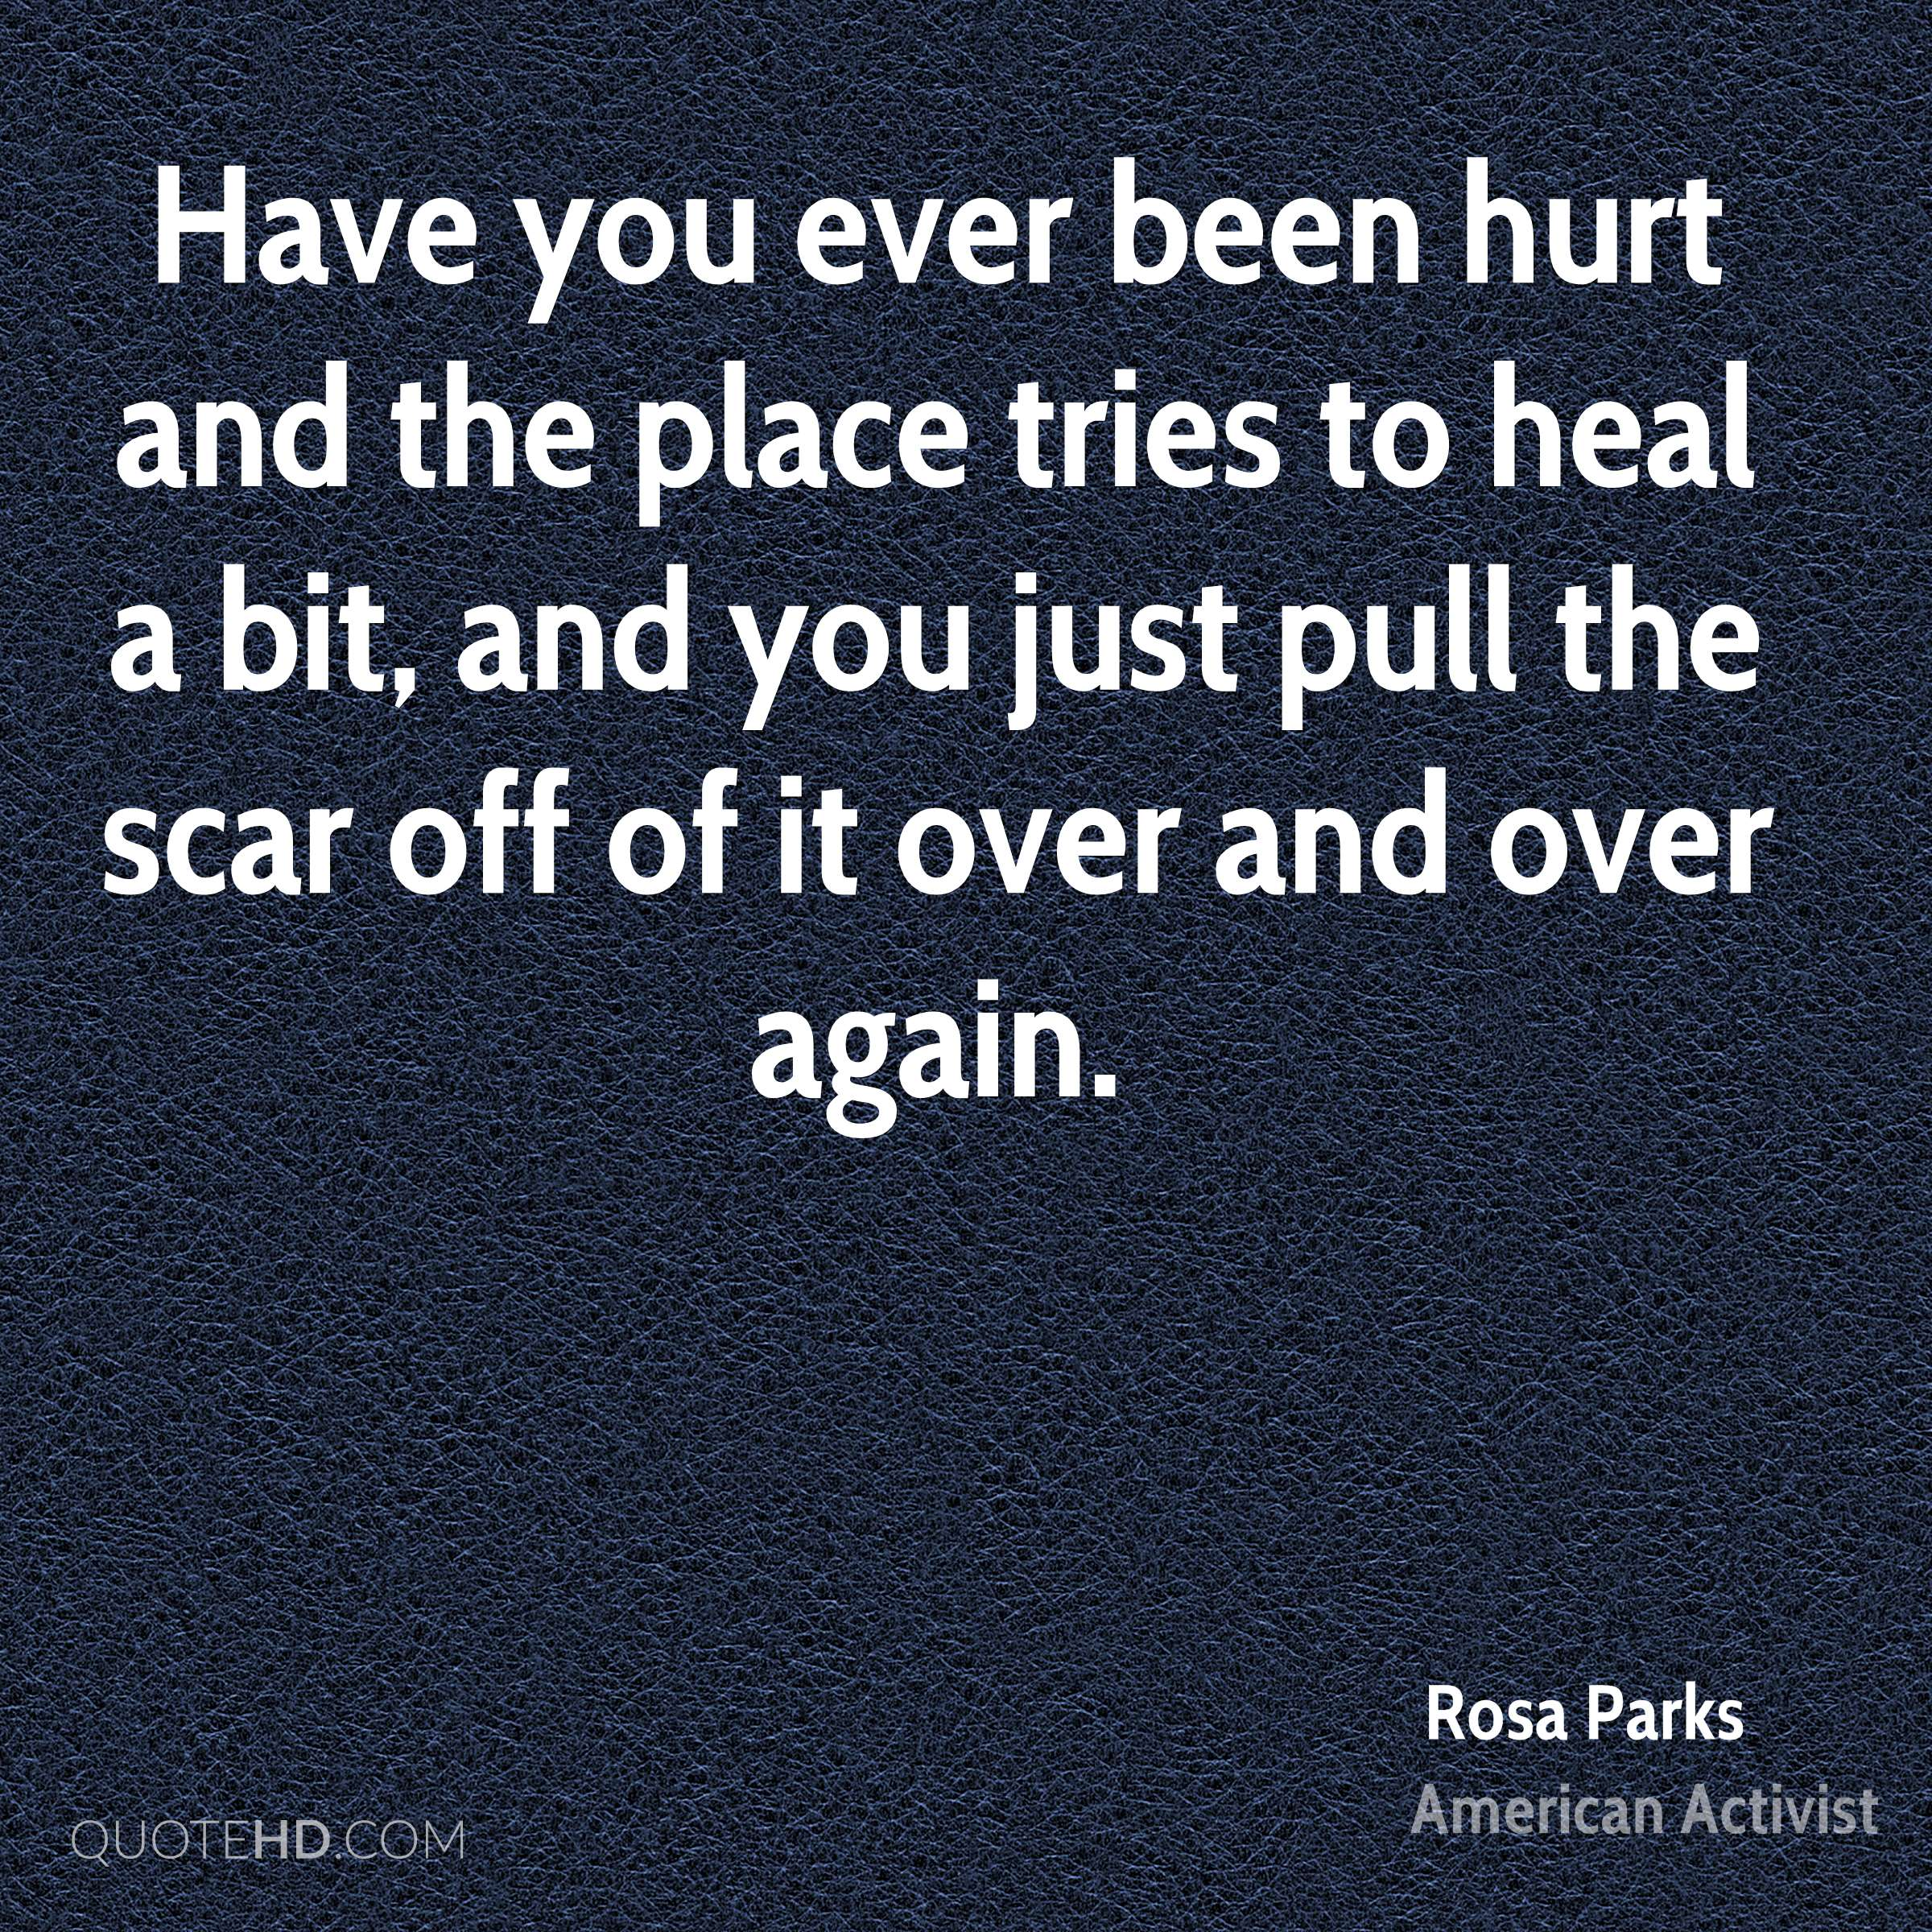 Have you ever been hurt and the place tries to heal a bit, and you just pull the scar off of it over and over again.